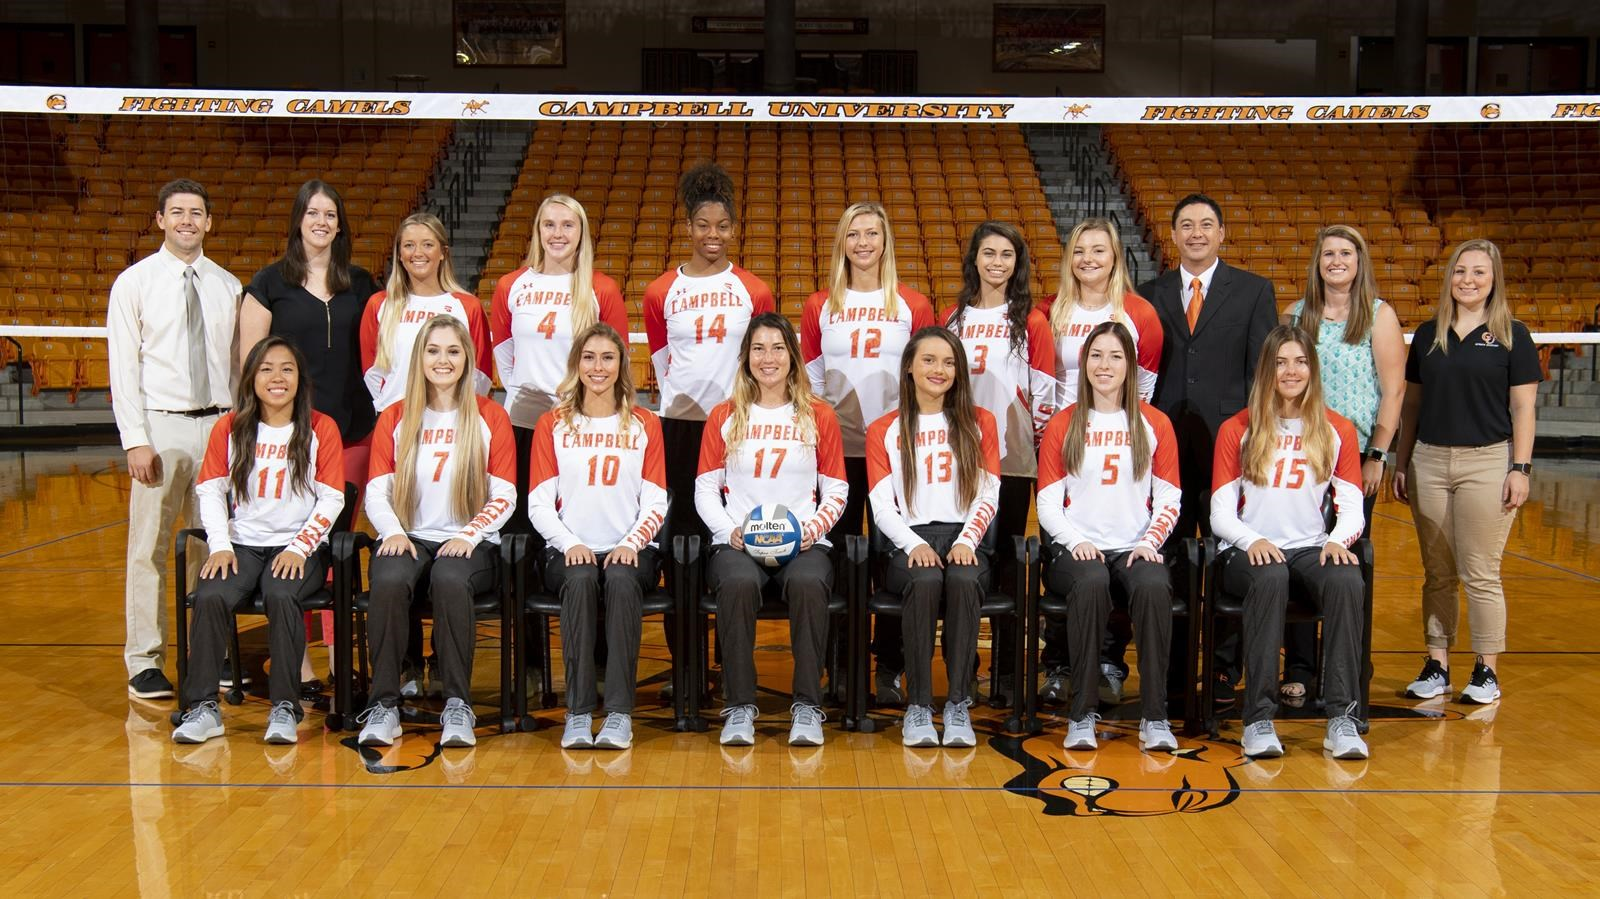 2018 Volleyball Roster Campbell University